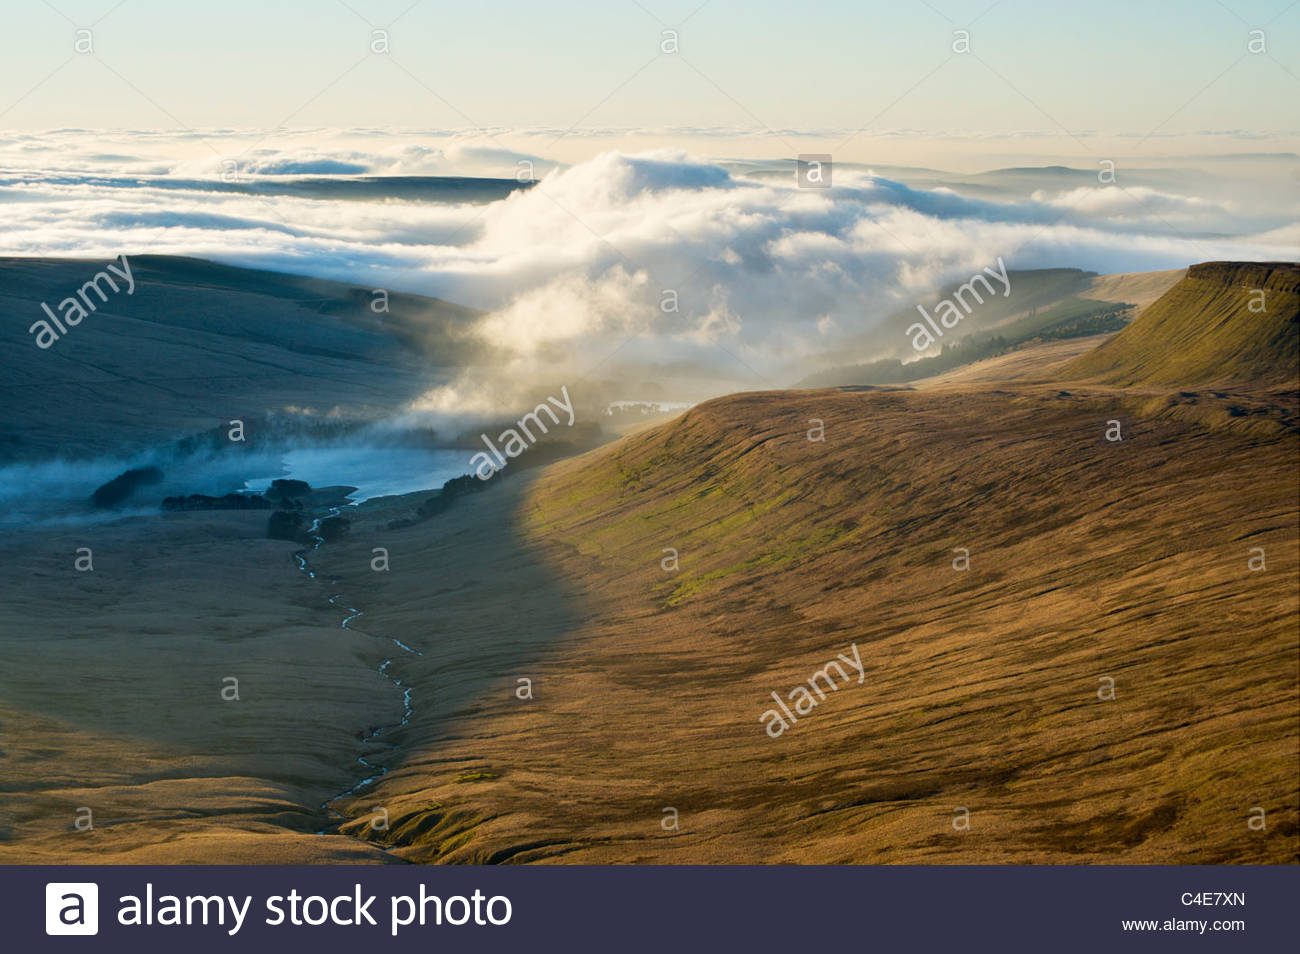 Mist swirls around the Upper Neuadd Reservoir, Brecon Beacons National Park, South Wales. - Stock Image